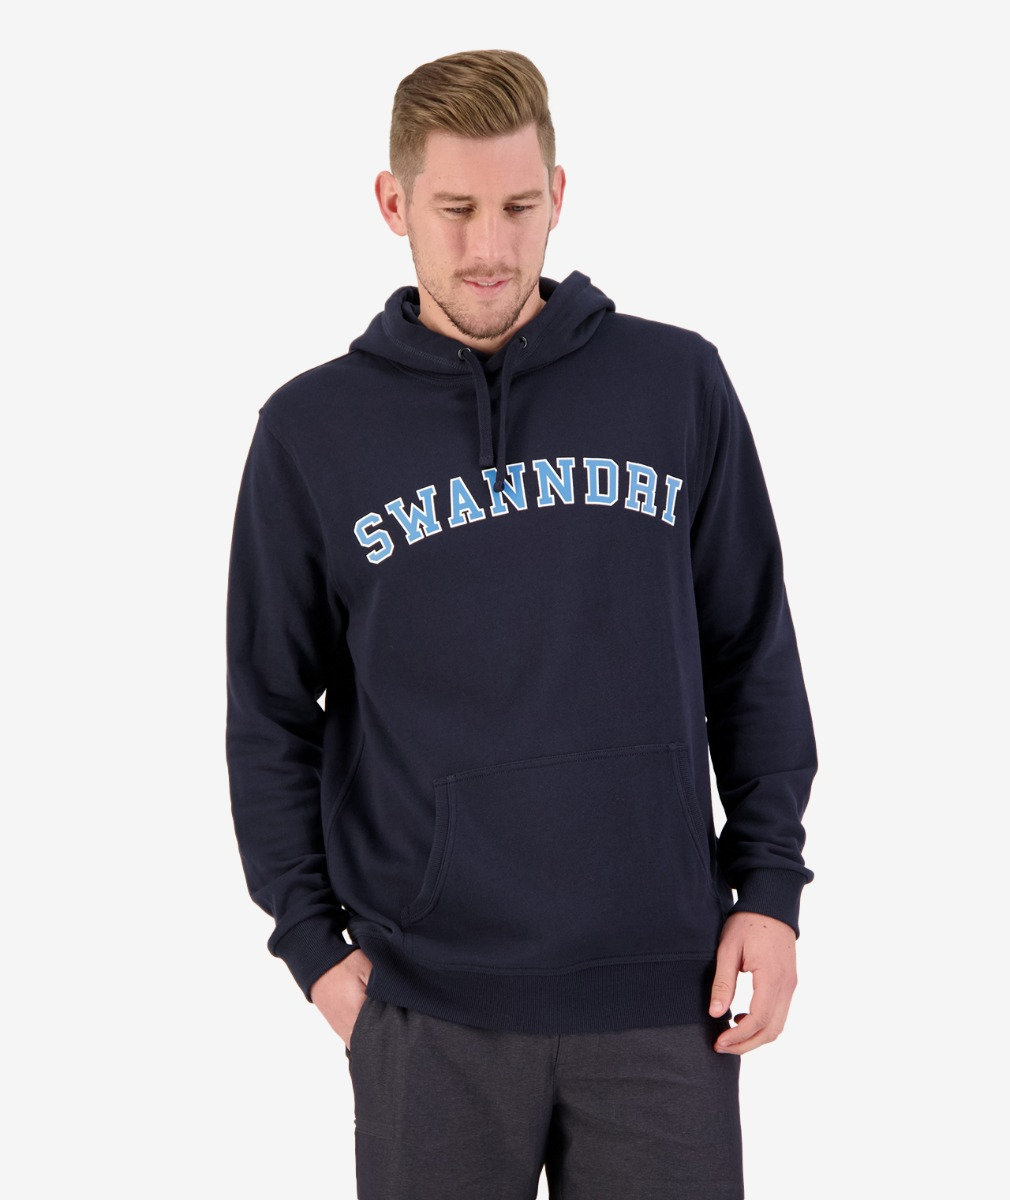 Swanndri Men's Collegiate Hoody